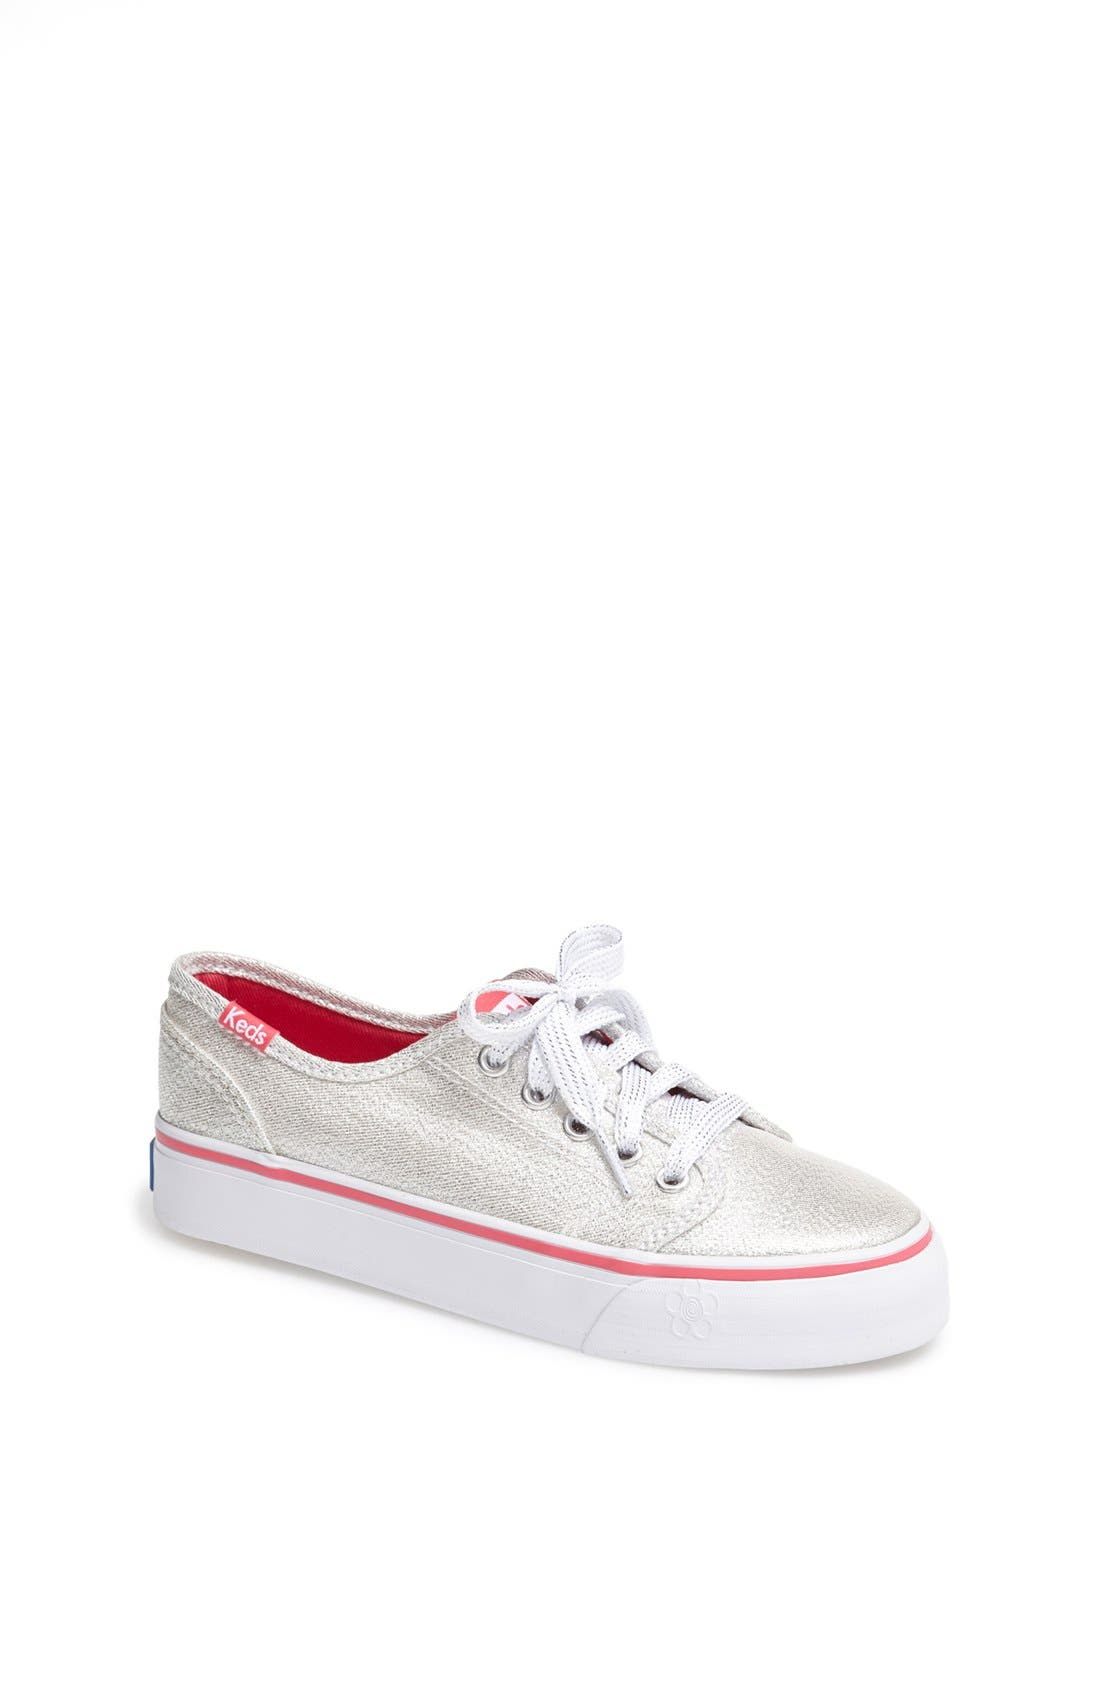 Alternate Image 1 Selected - Keds® 'Double Dutch Shimmer' Sneaker (Toddler, Little Kid & Big Kid)